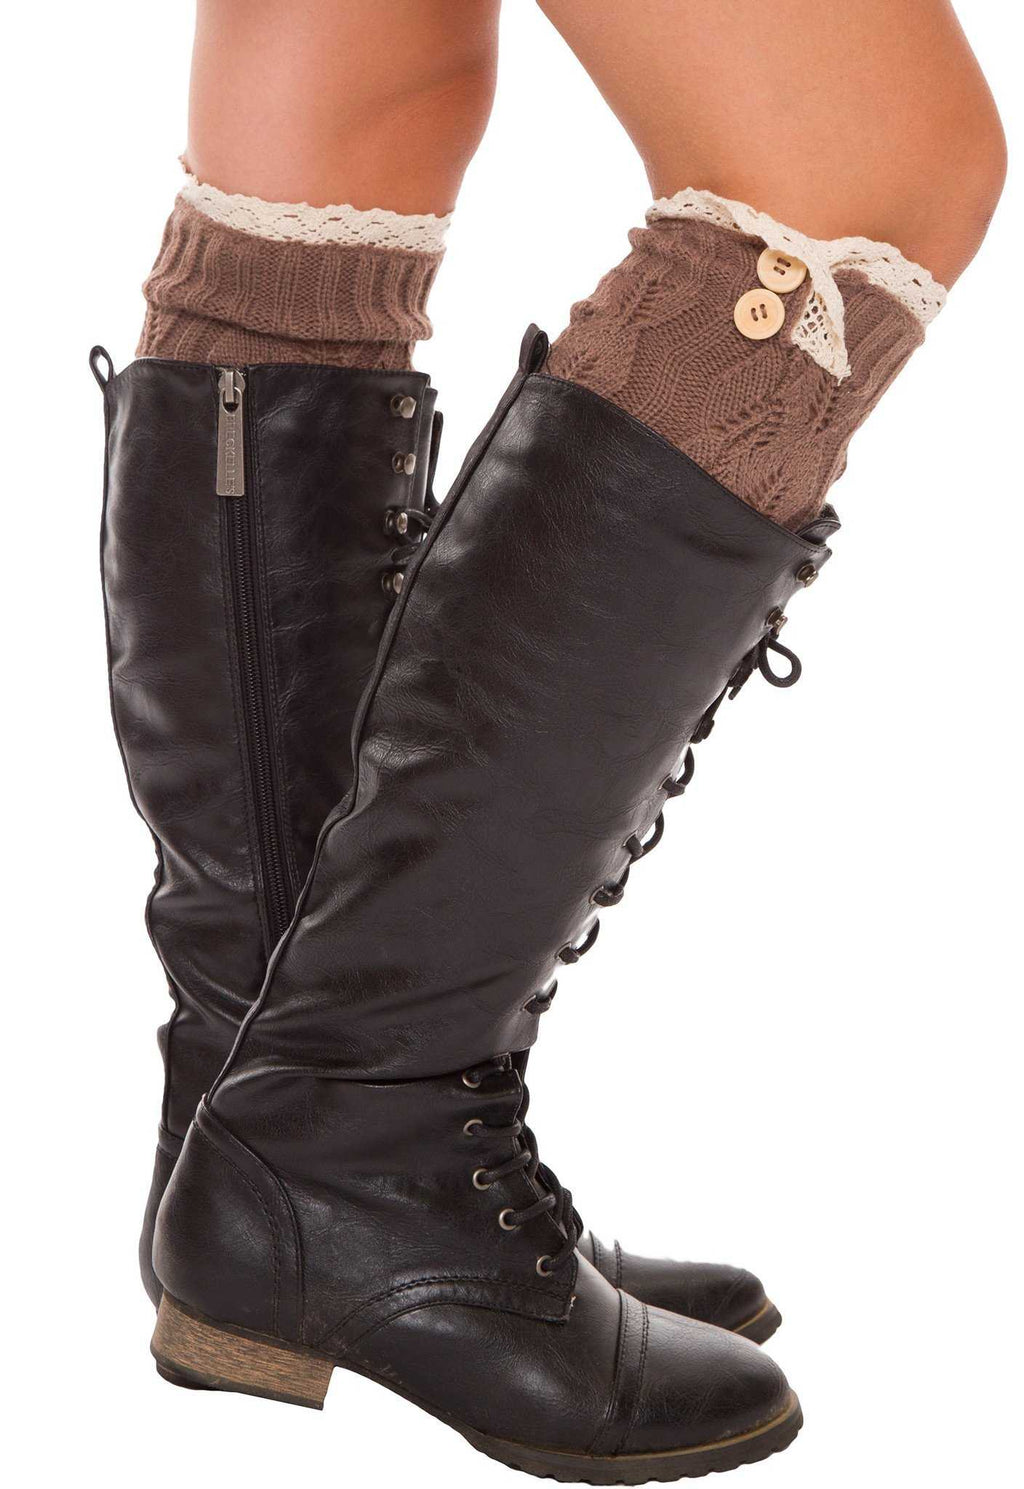 Accessories - Amberly Leg Warmers - Brown